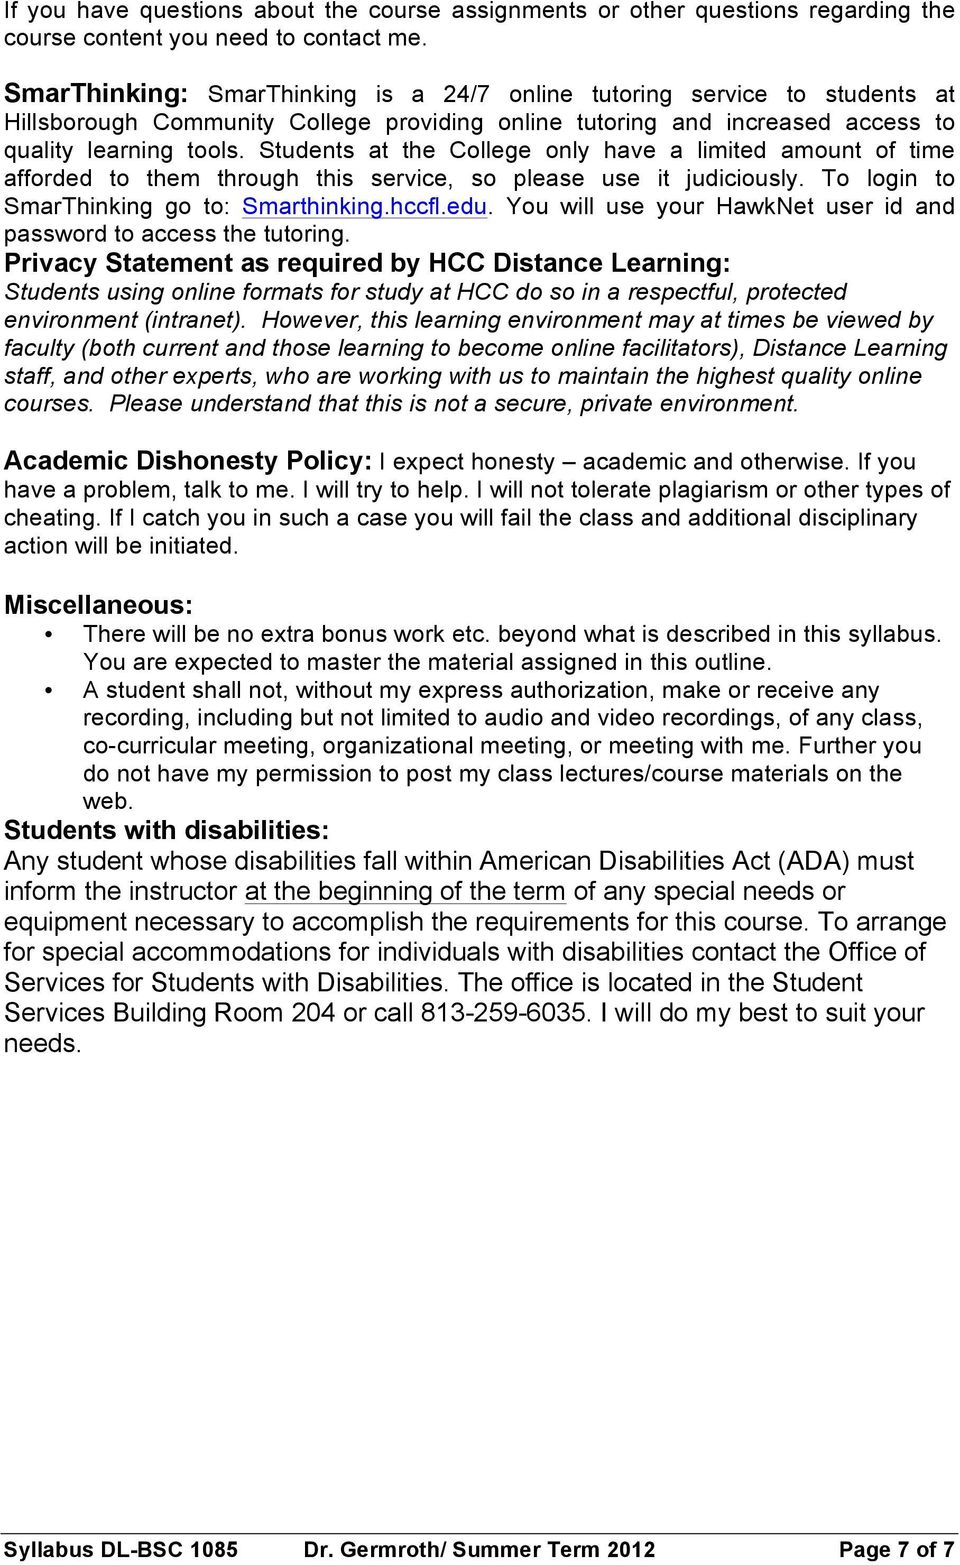 Syllabus human anatomy and physiology i pdf students at the college only have a limited amount of time afforded to them through this fandeluxe Images